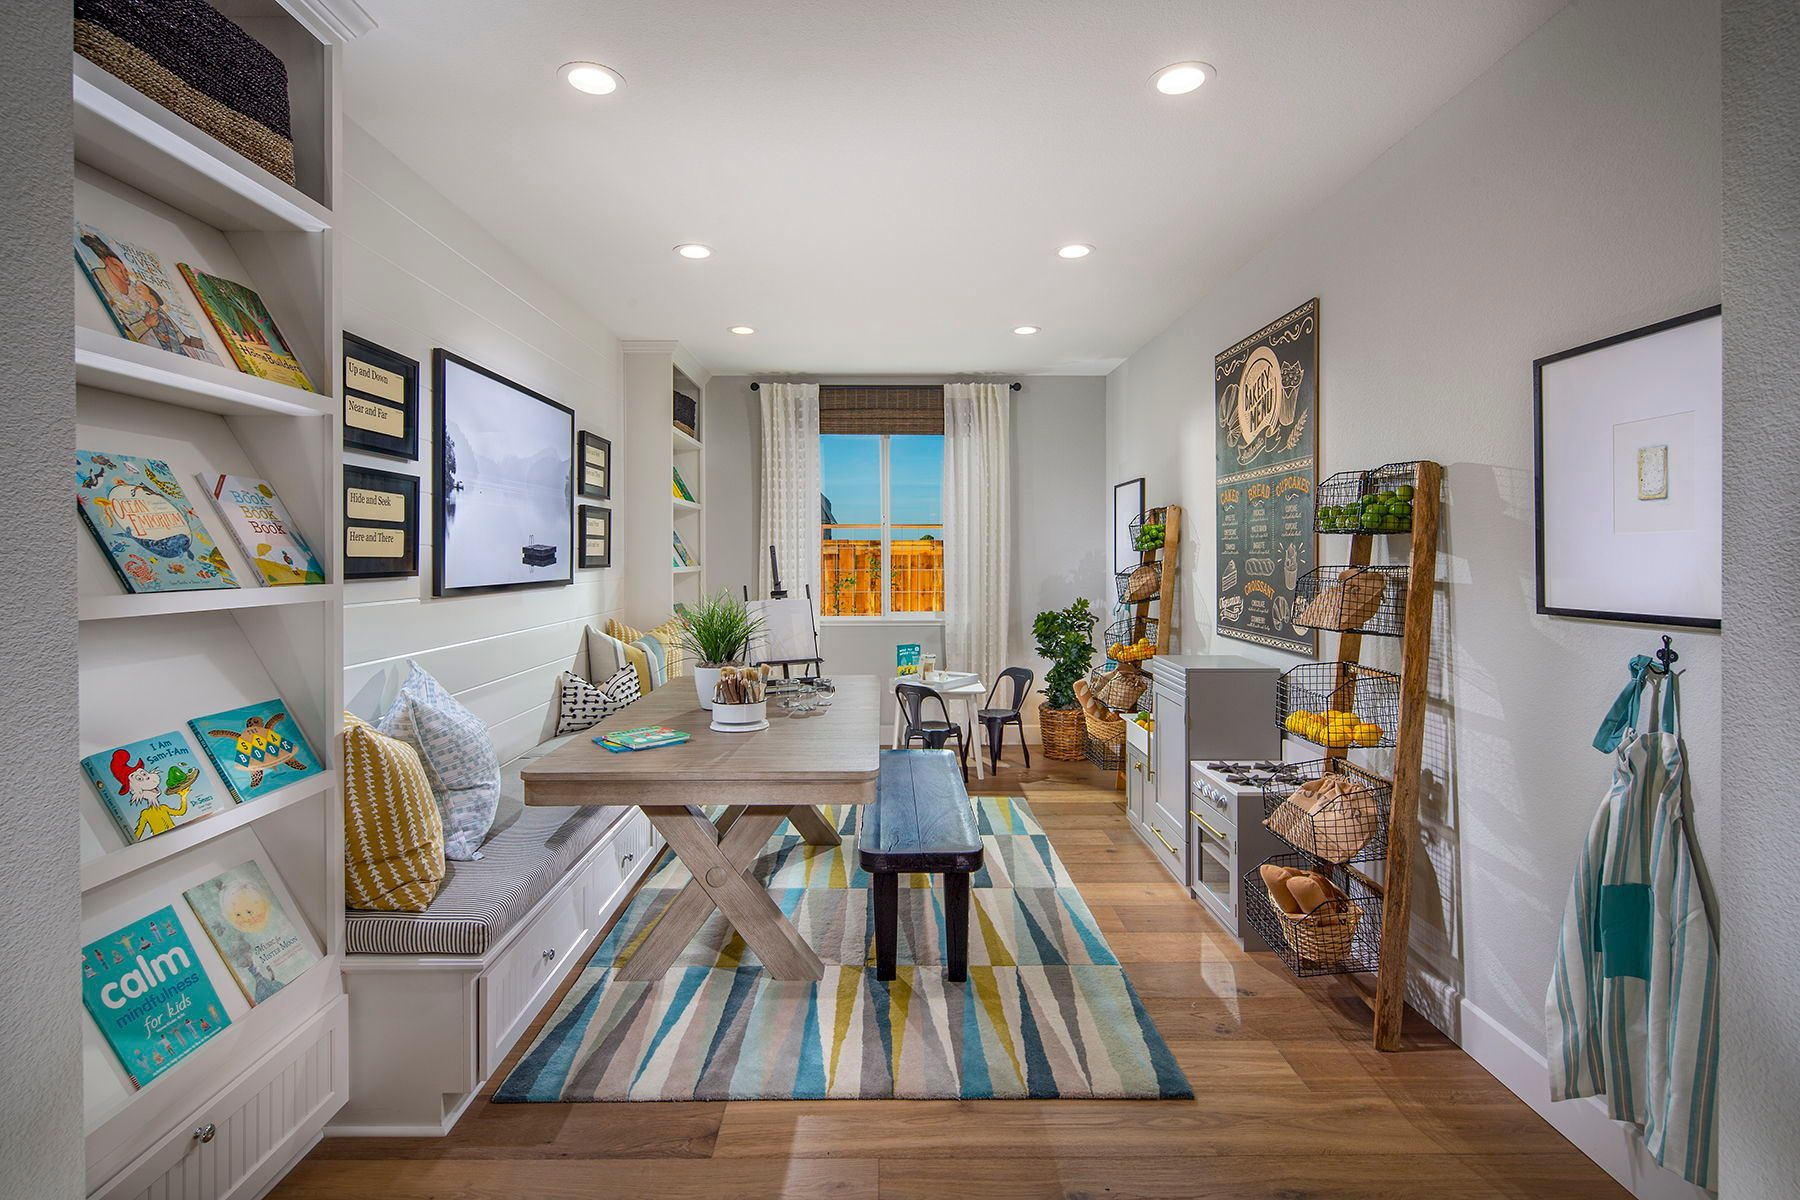 Vente at Tracy Hills in Tracy, CA by Shea Homes   Residence 2 Loft  #SheaHomes #SheaHomesNorCal #SheaHomeowners #SheaNorCal #LiveTheSheaDifference #NorCalHomes #NorCalRealEstate #BayAreaRealEstate #BayAreaNewHomes #HomeDesignInspiration #HomeInspiration #VenteAtTracyHills #Tracy Sales: Shea Homes Marketing Company (CalDRE #01378646); Construction: Shea Homes, Inc. (CSLB #672285). Equal Housing Opportunity.